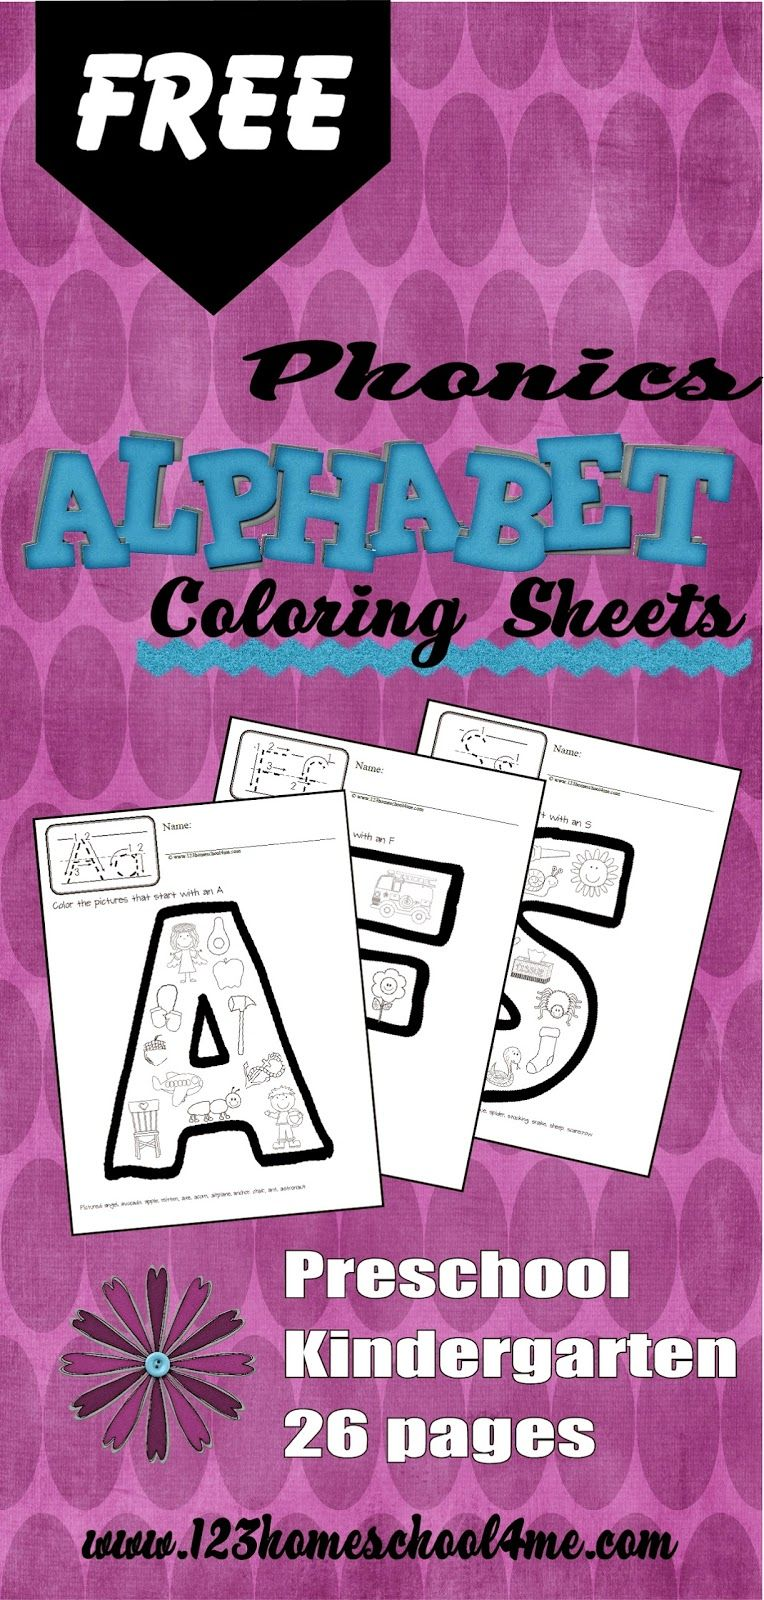 Free Alphabet Coloring Pages Play Activities For Kids Pinterest